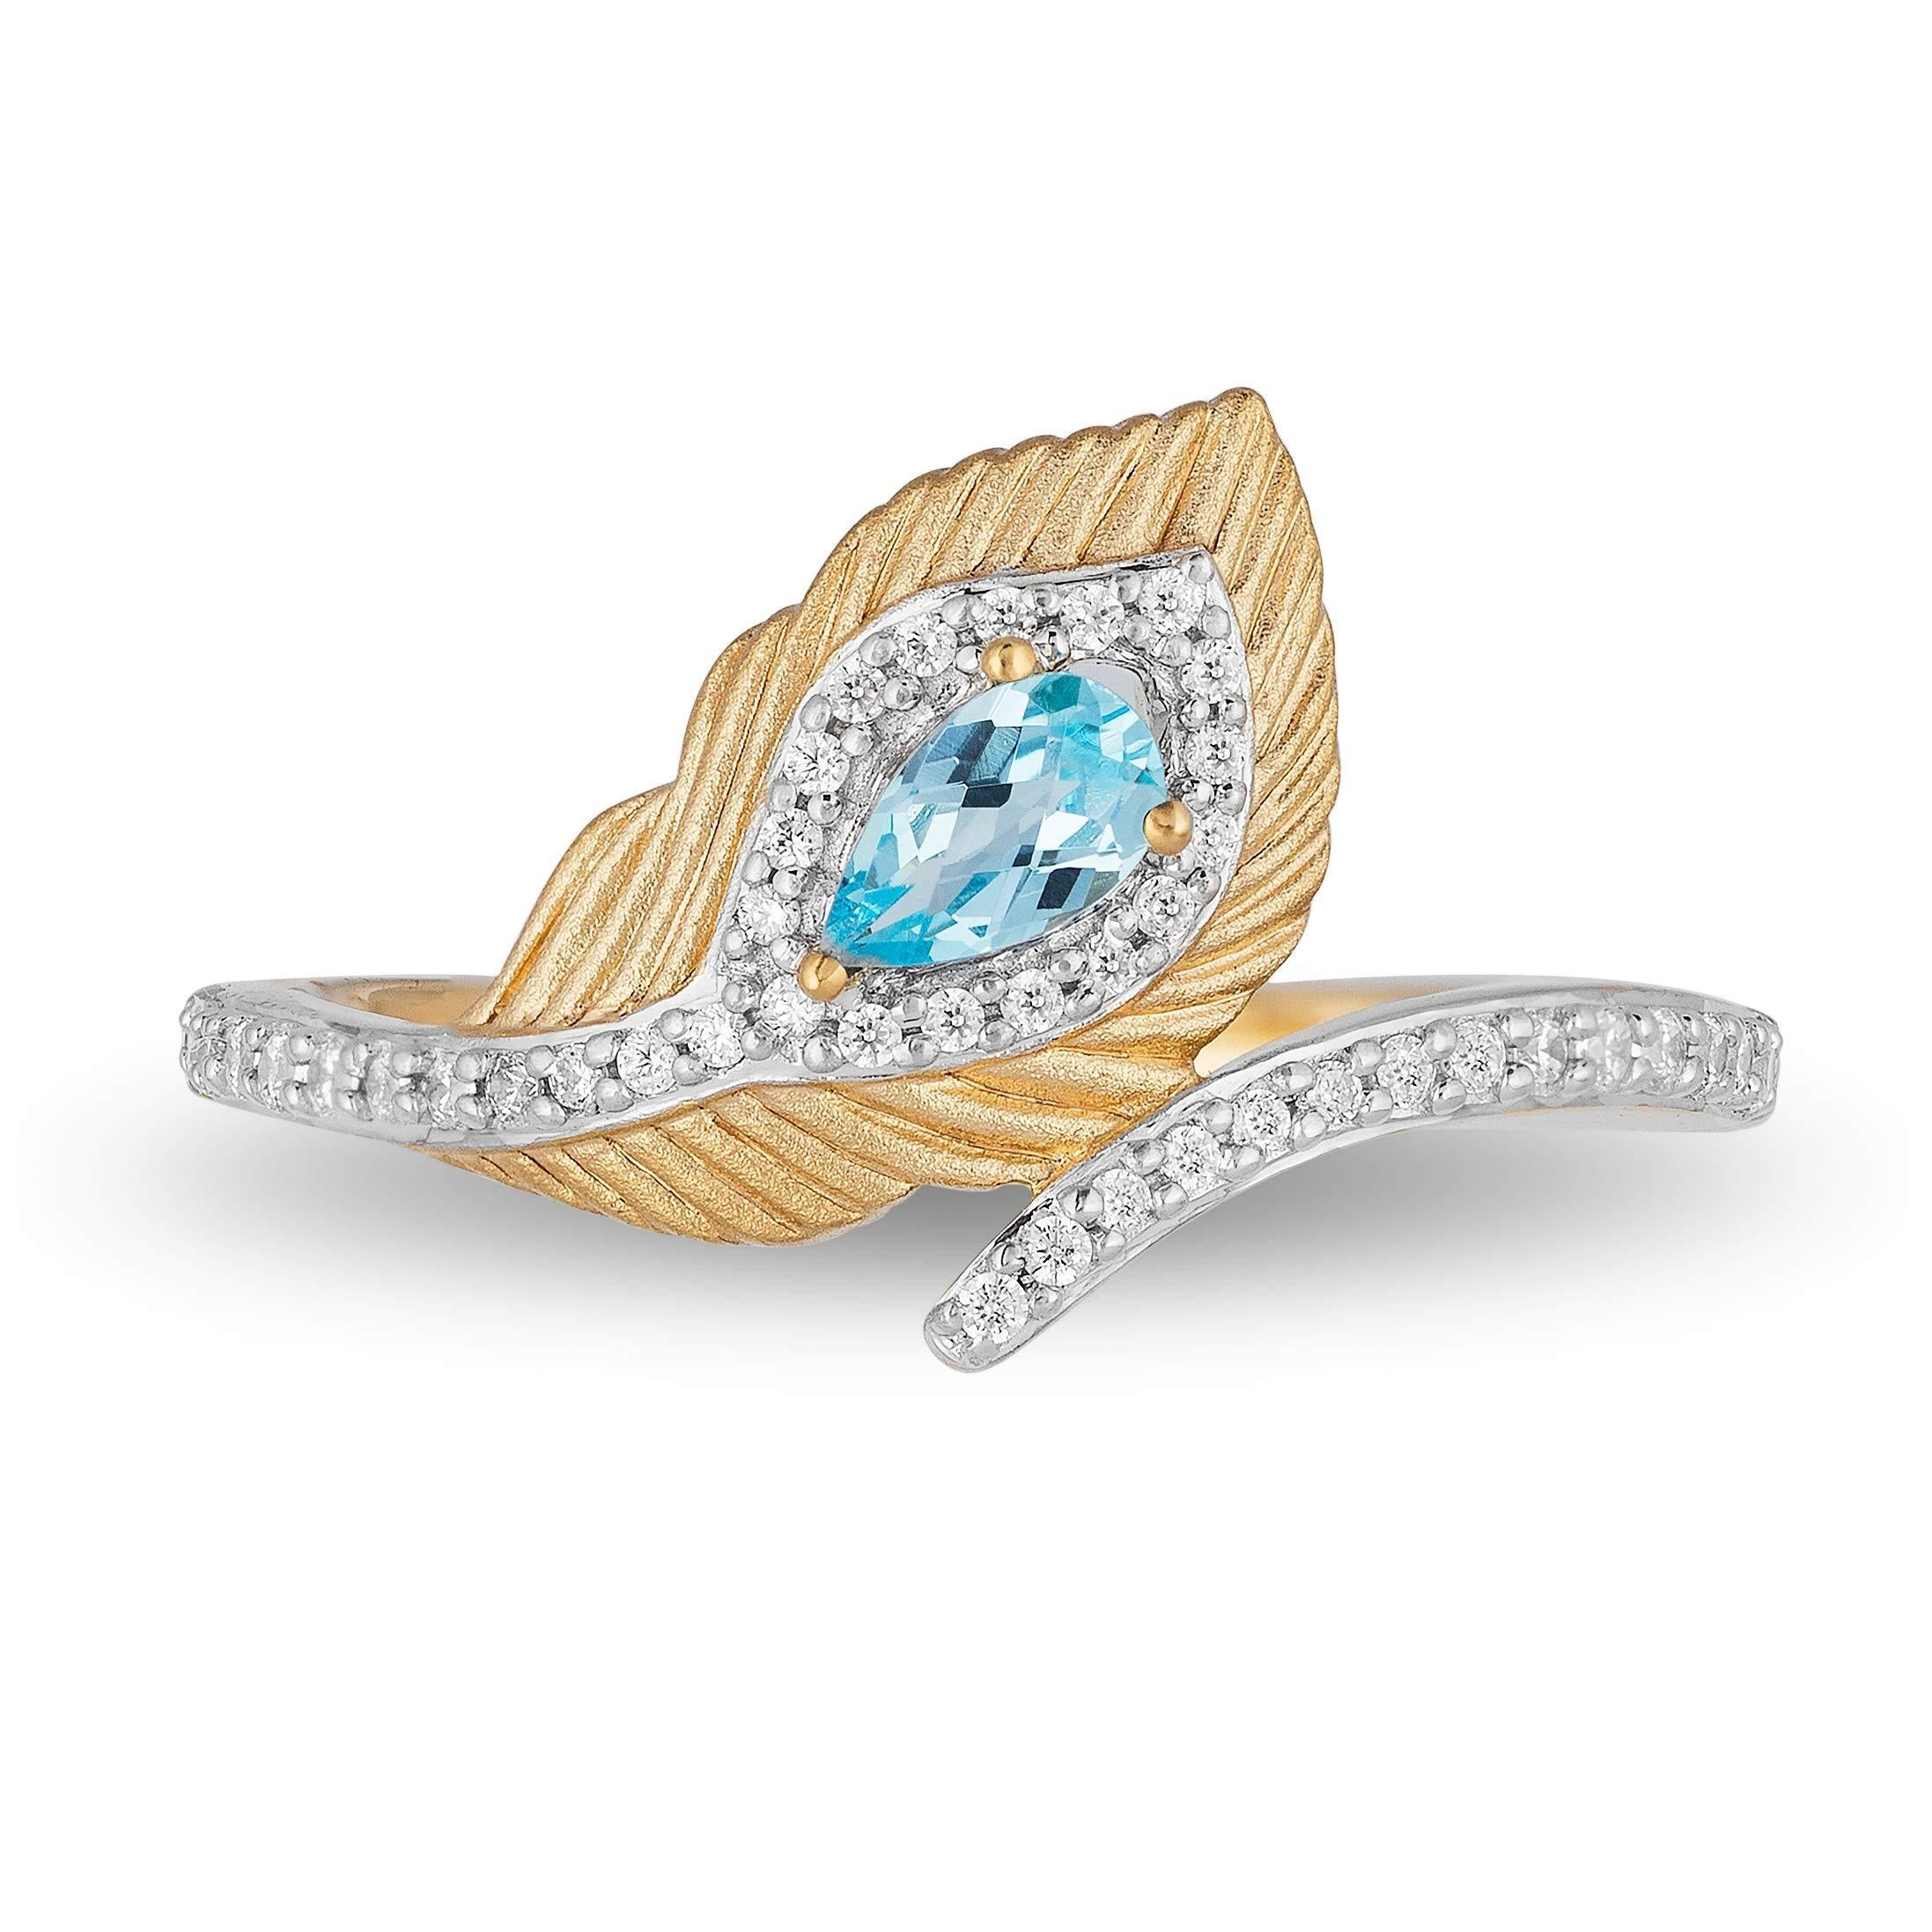 enchanted_disney-jasmine_peacock_feather_ring-9k_yellow_gold_0.16CTTW_3